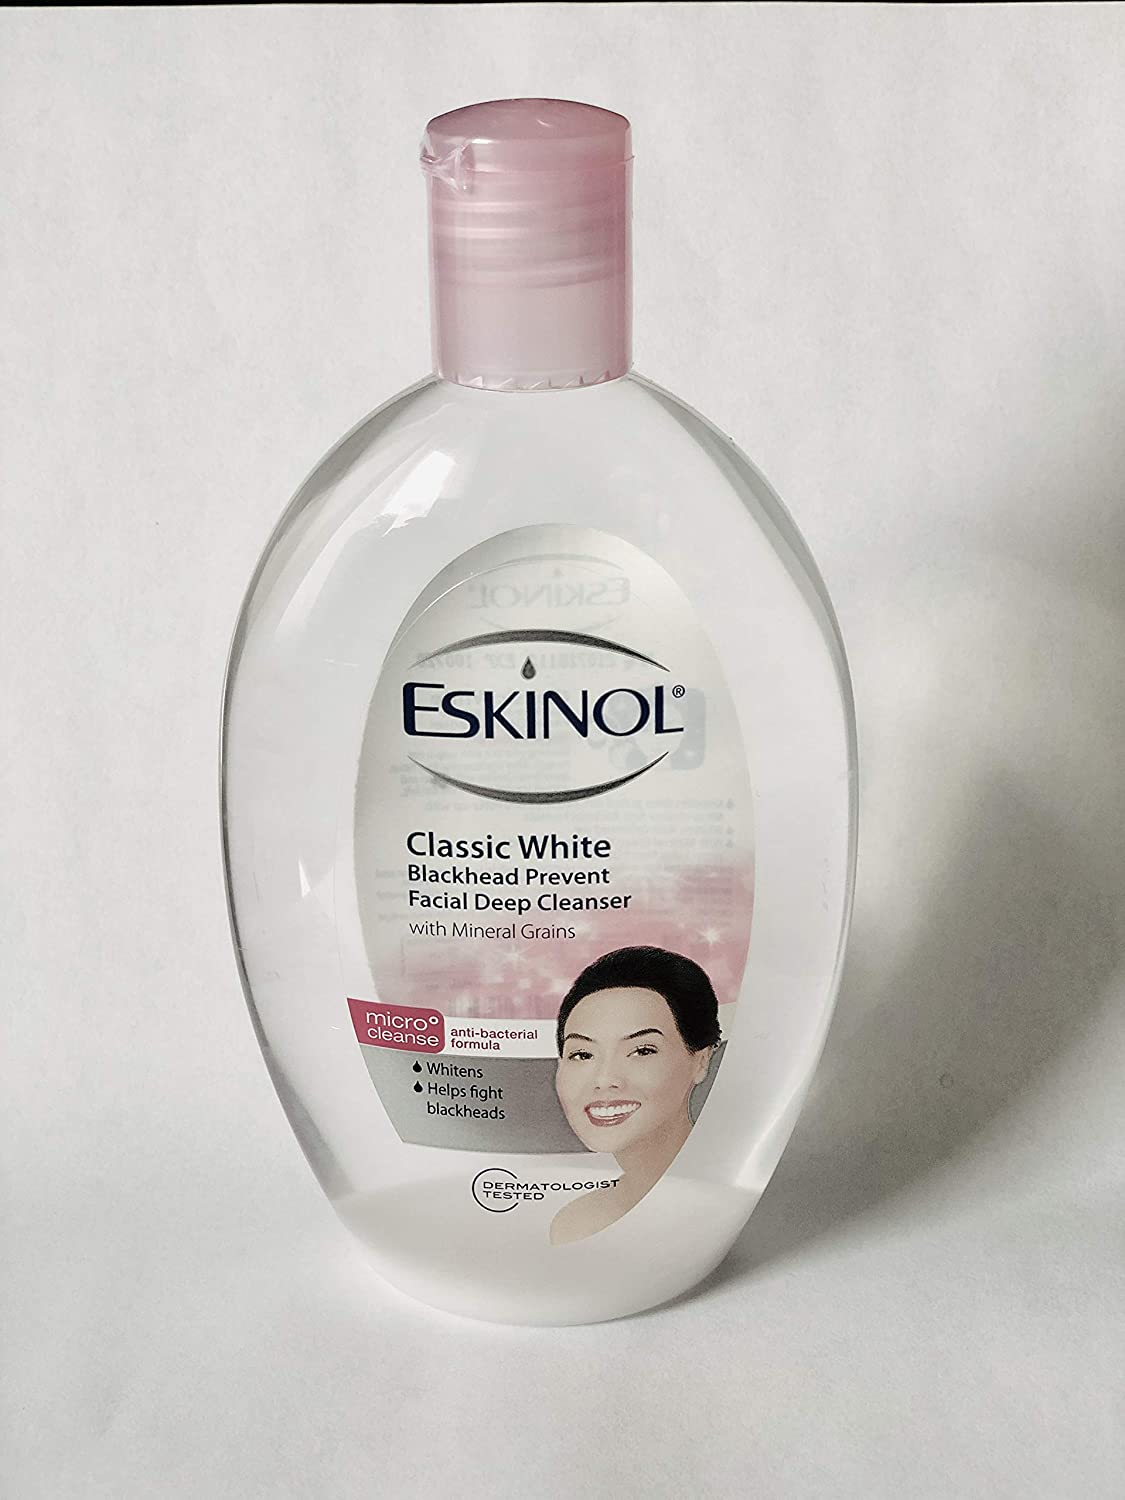 Lot of 2 Eskinol Naturals Classic White with Mineral Grains Facial Cleanser 7.6 Oz - 225 ml Bottle